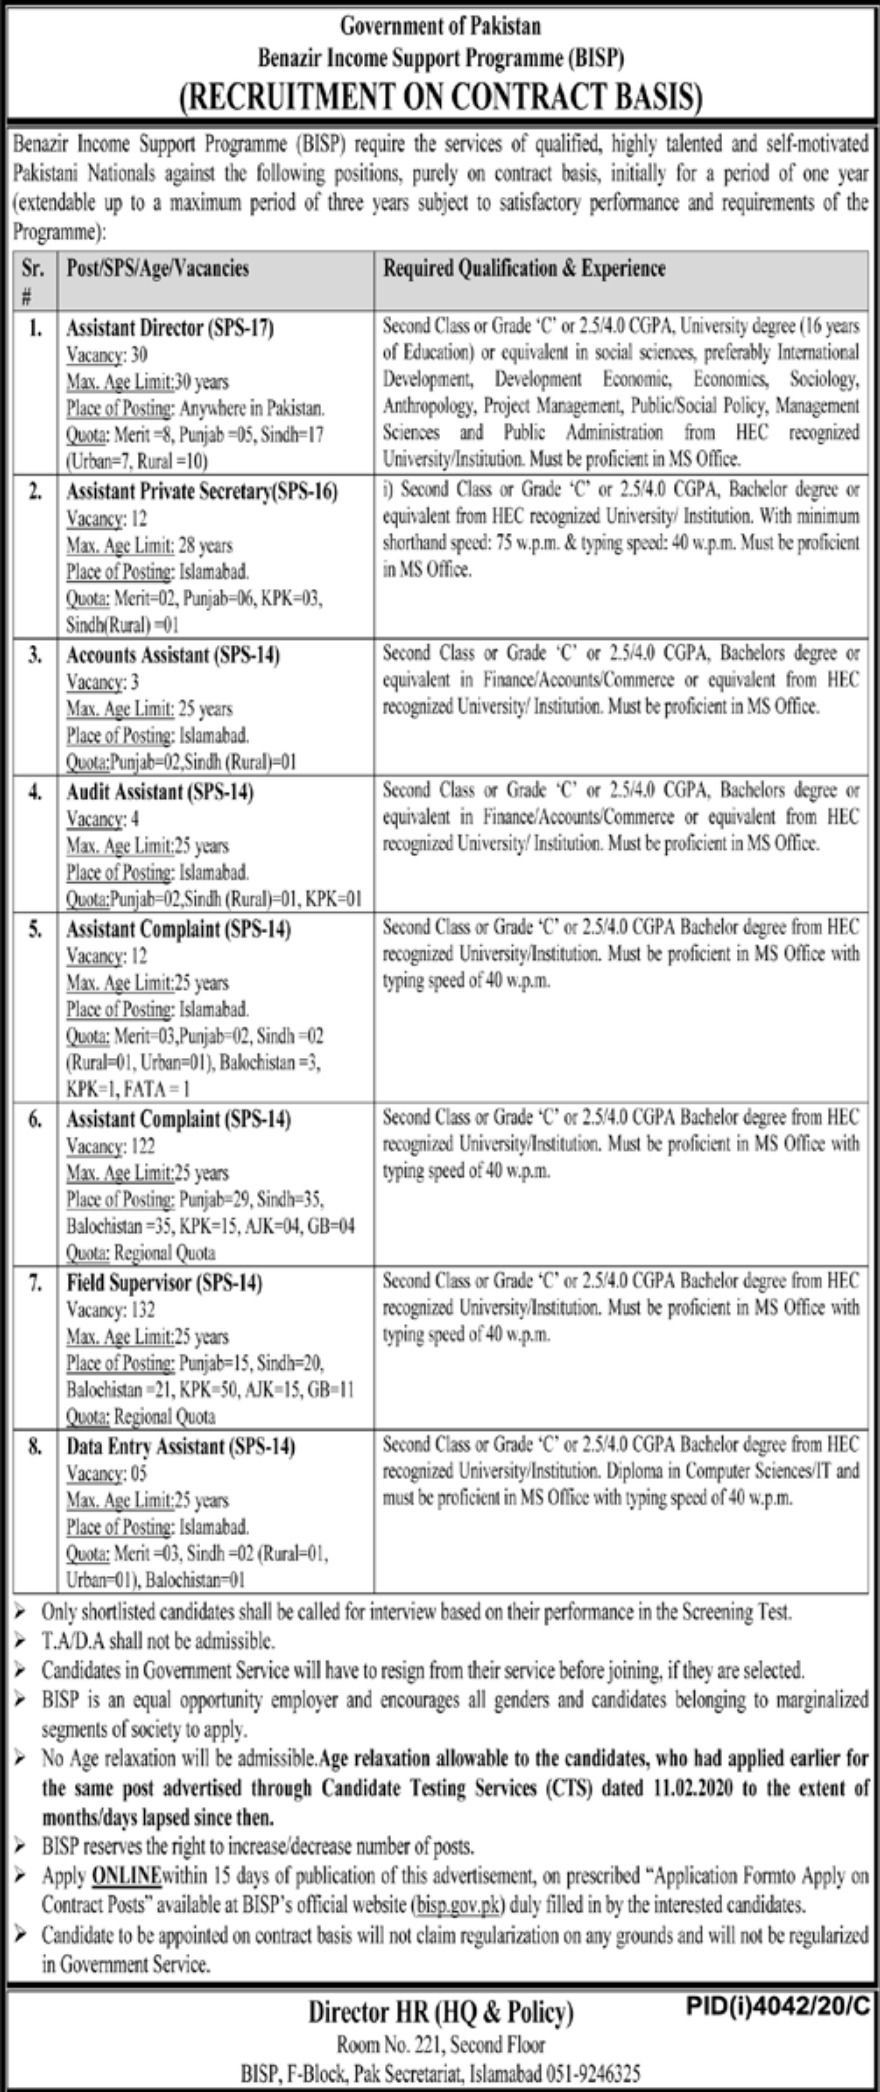 BISP Government of Pakistan Jobs February 2021